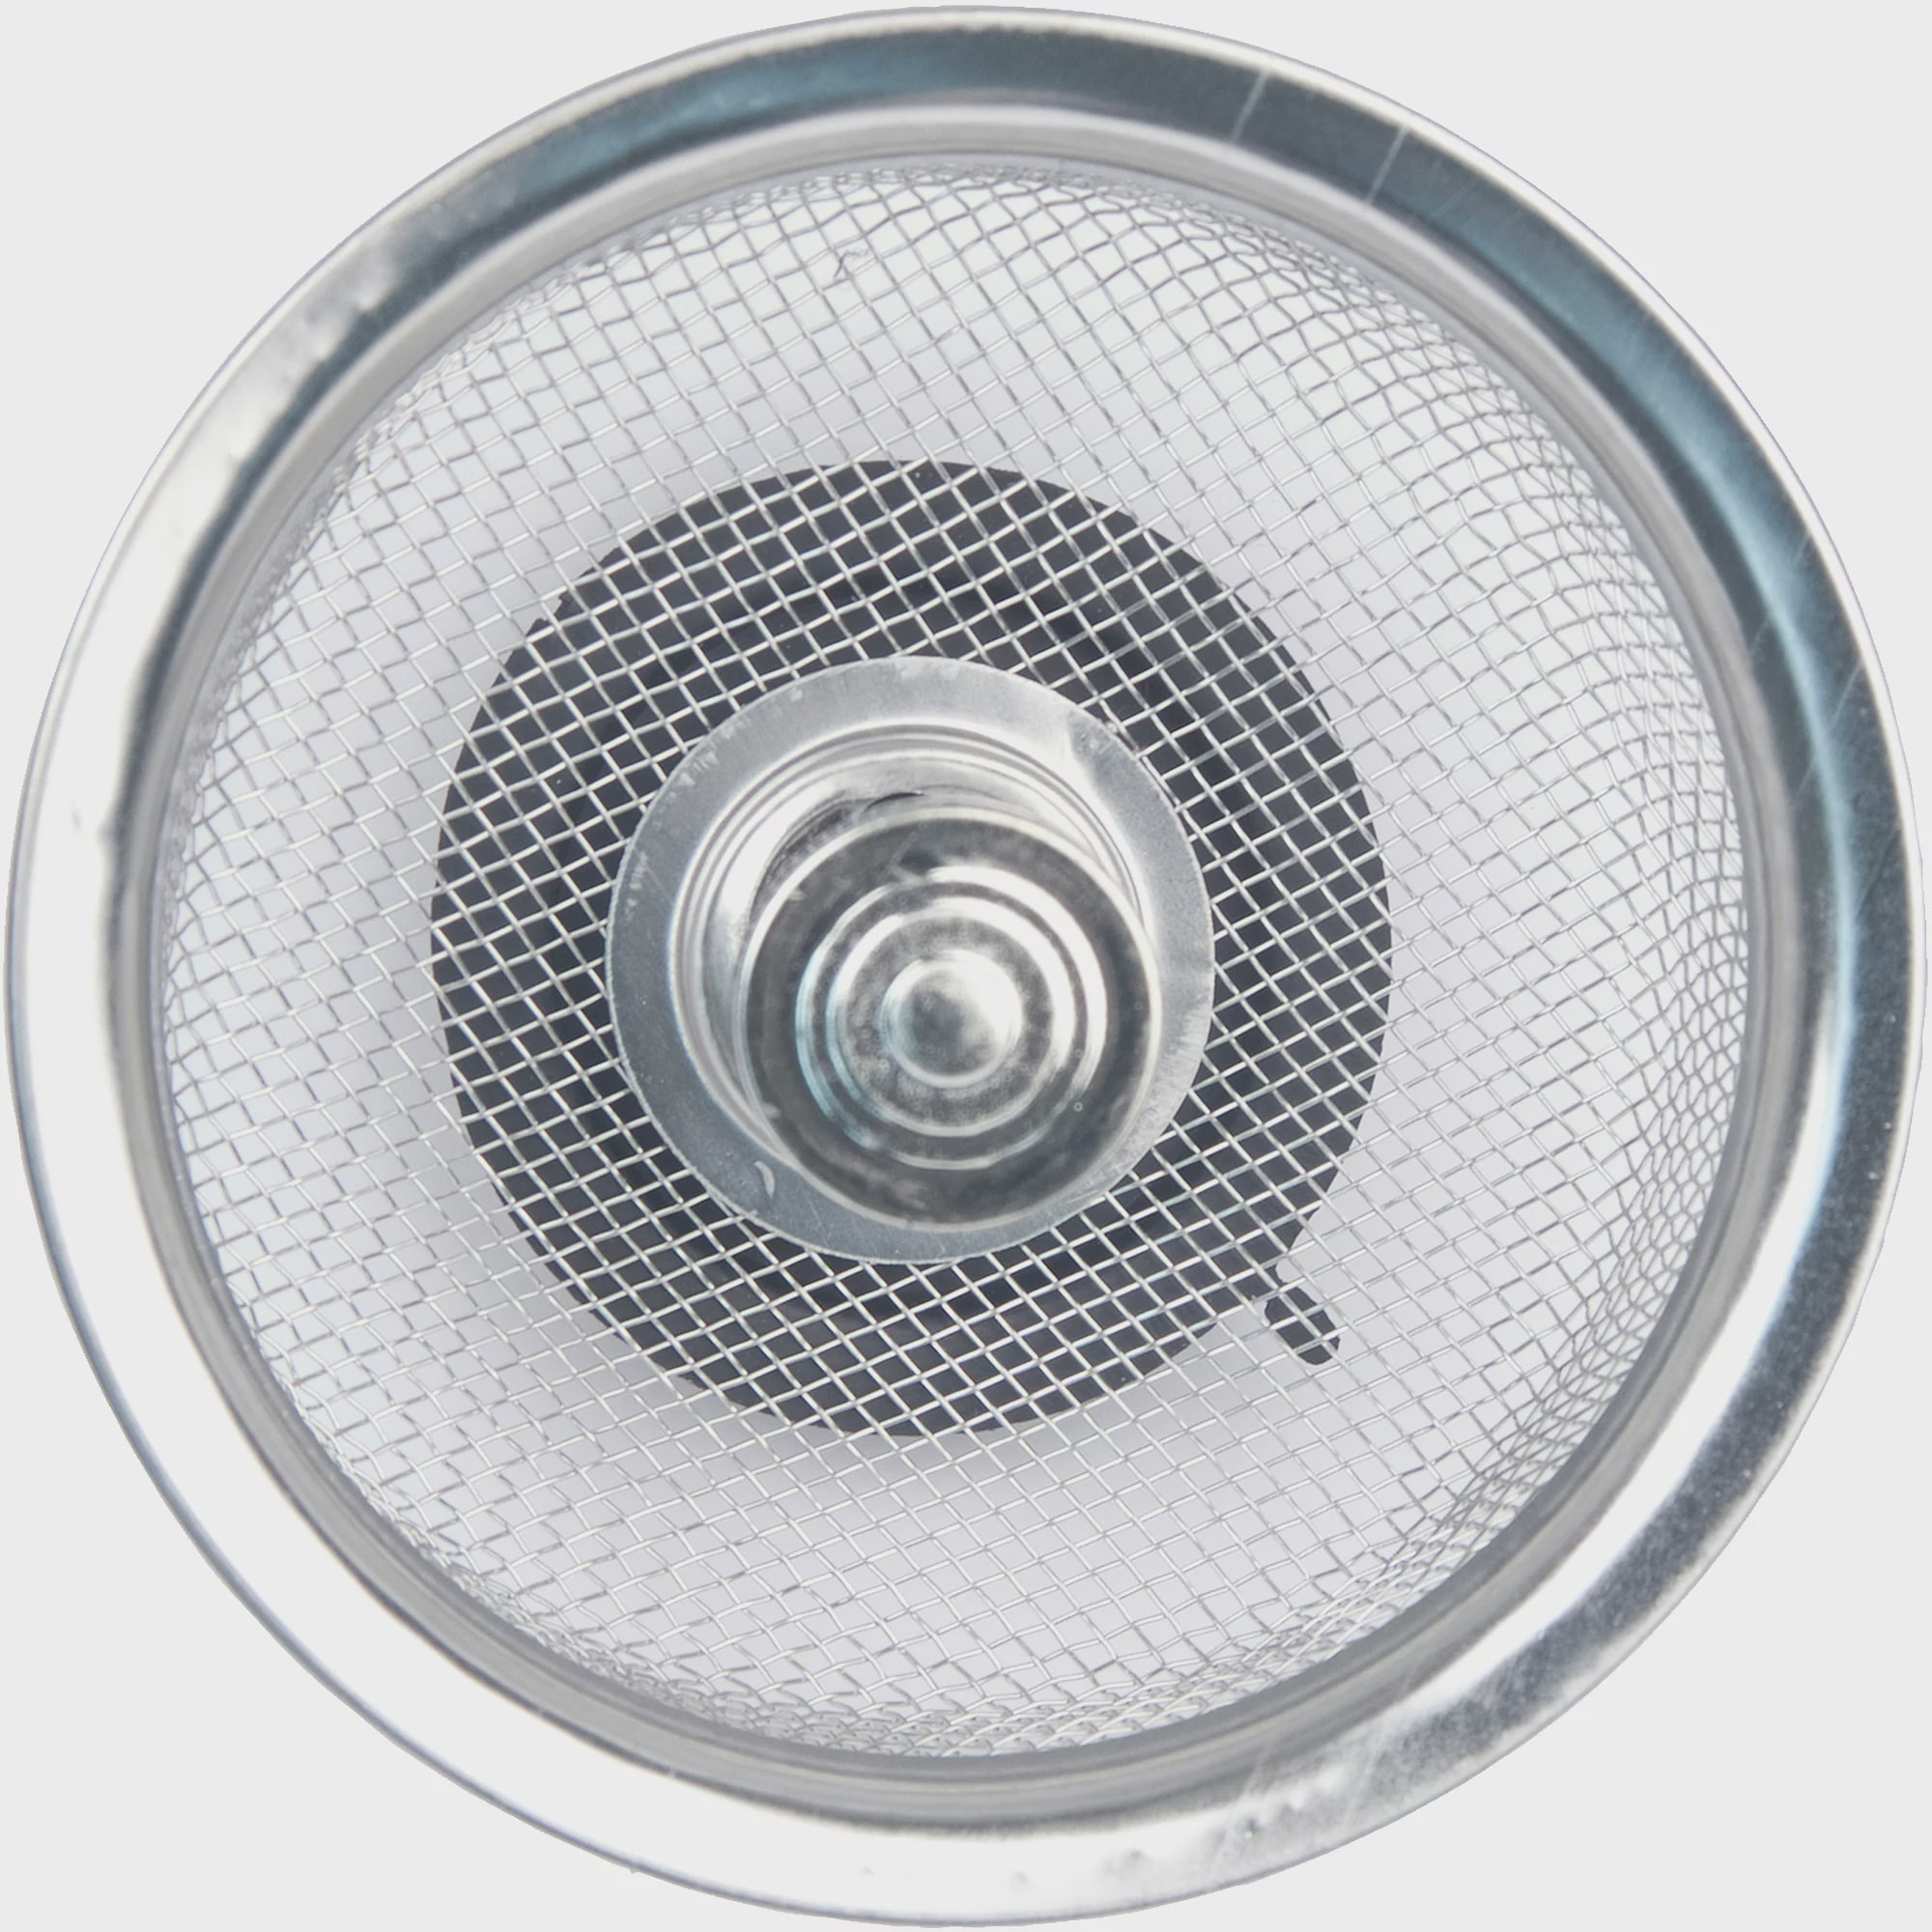 superior Kitchen Sink Stopper #9: Peerless Satin Nickel Mesh Sink Strainer with Stopper